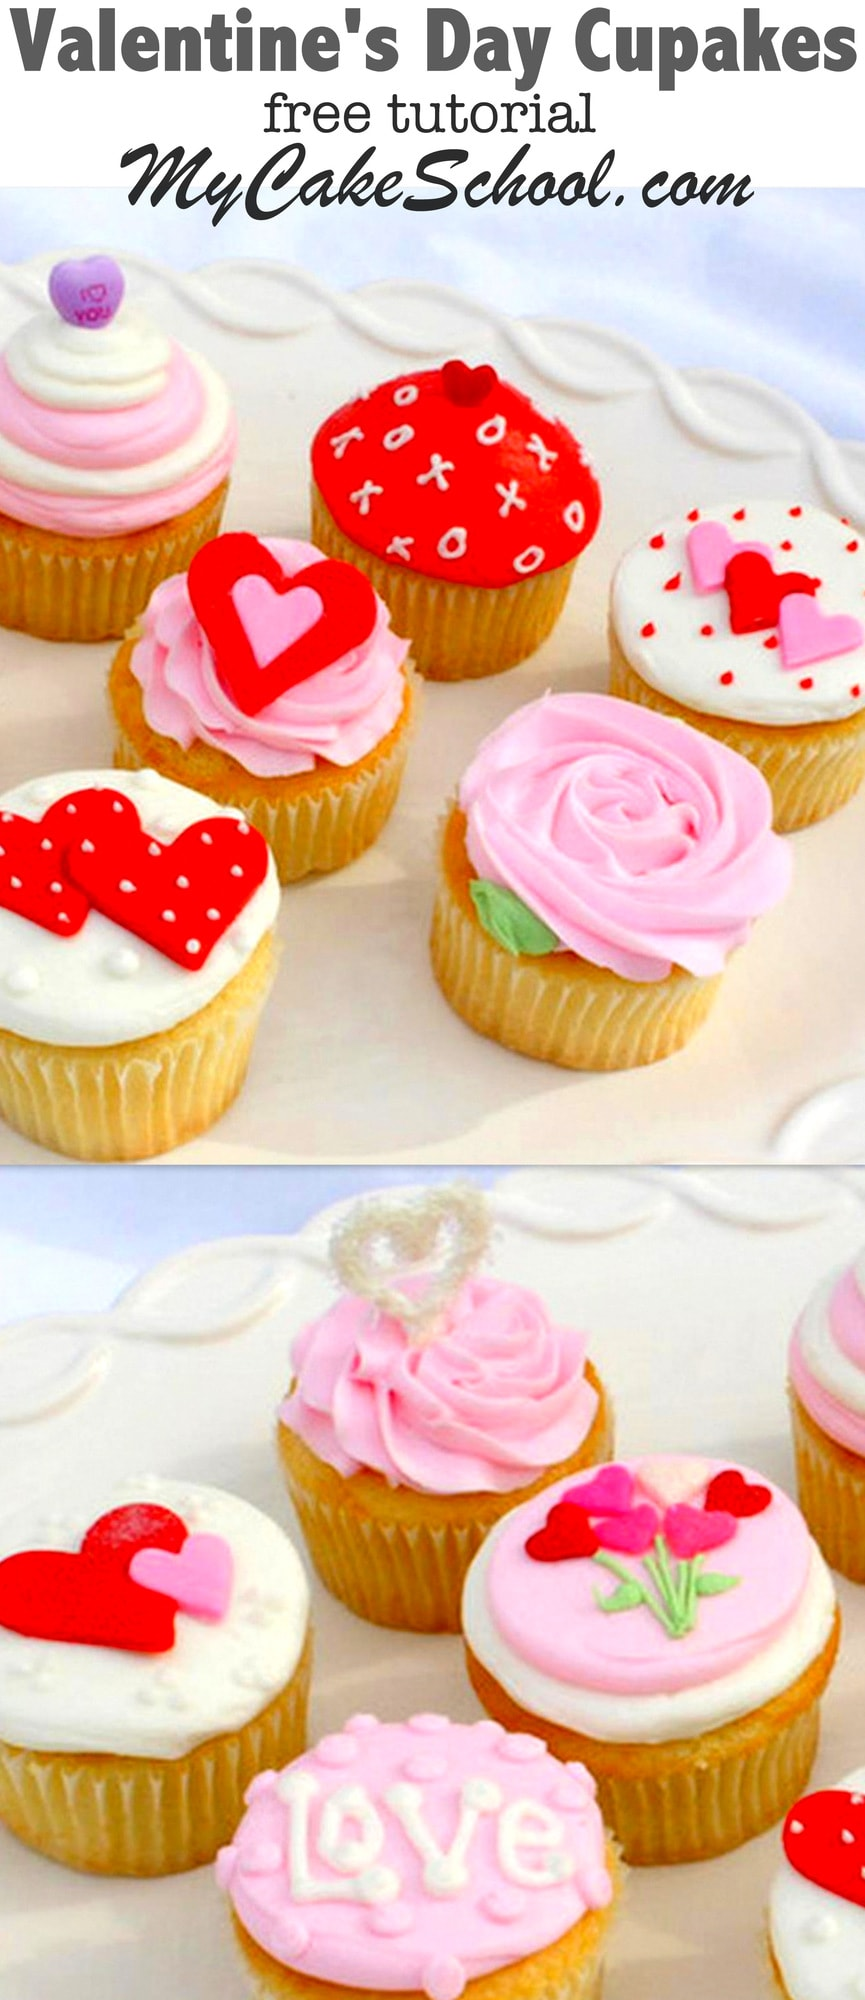 Learn to make these cute and easy Valentine's Day cupcake designs in MyCakeSchool.com's free step by step tutorial!  #cakedecorating #cupcakes #valentinesday